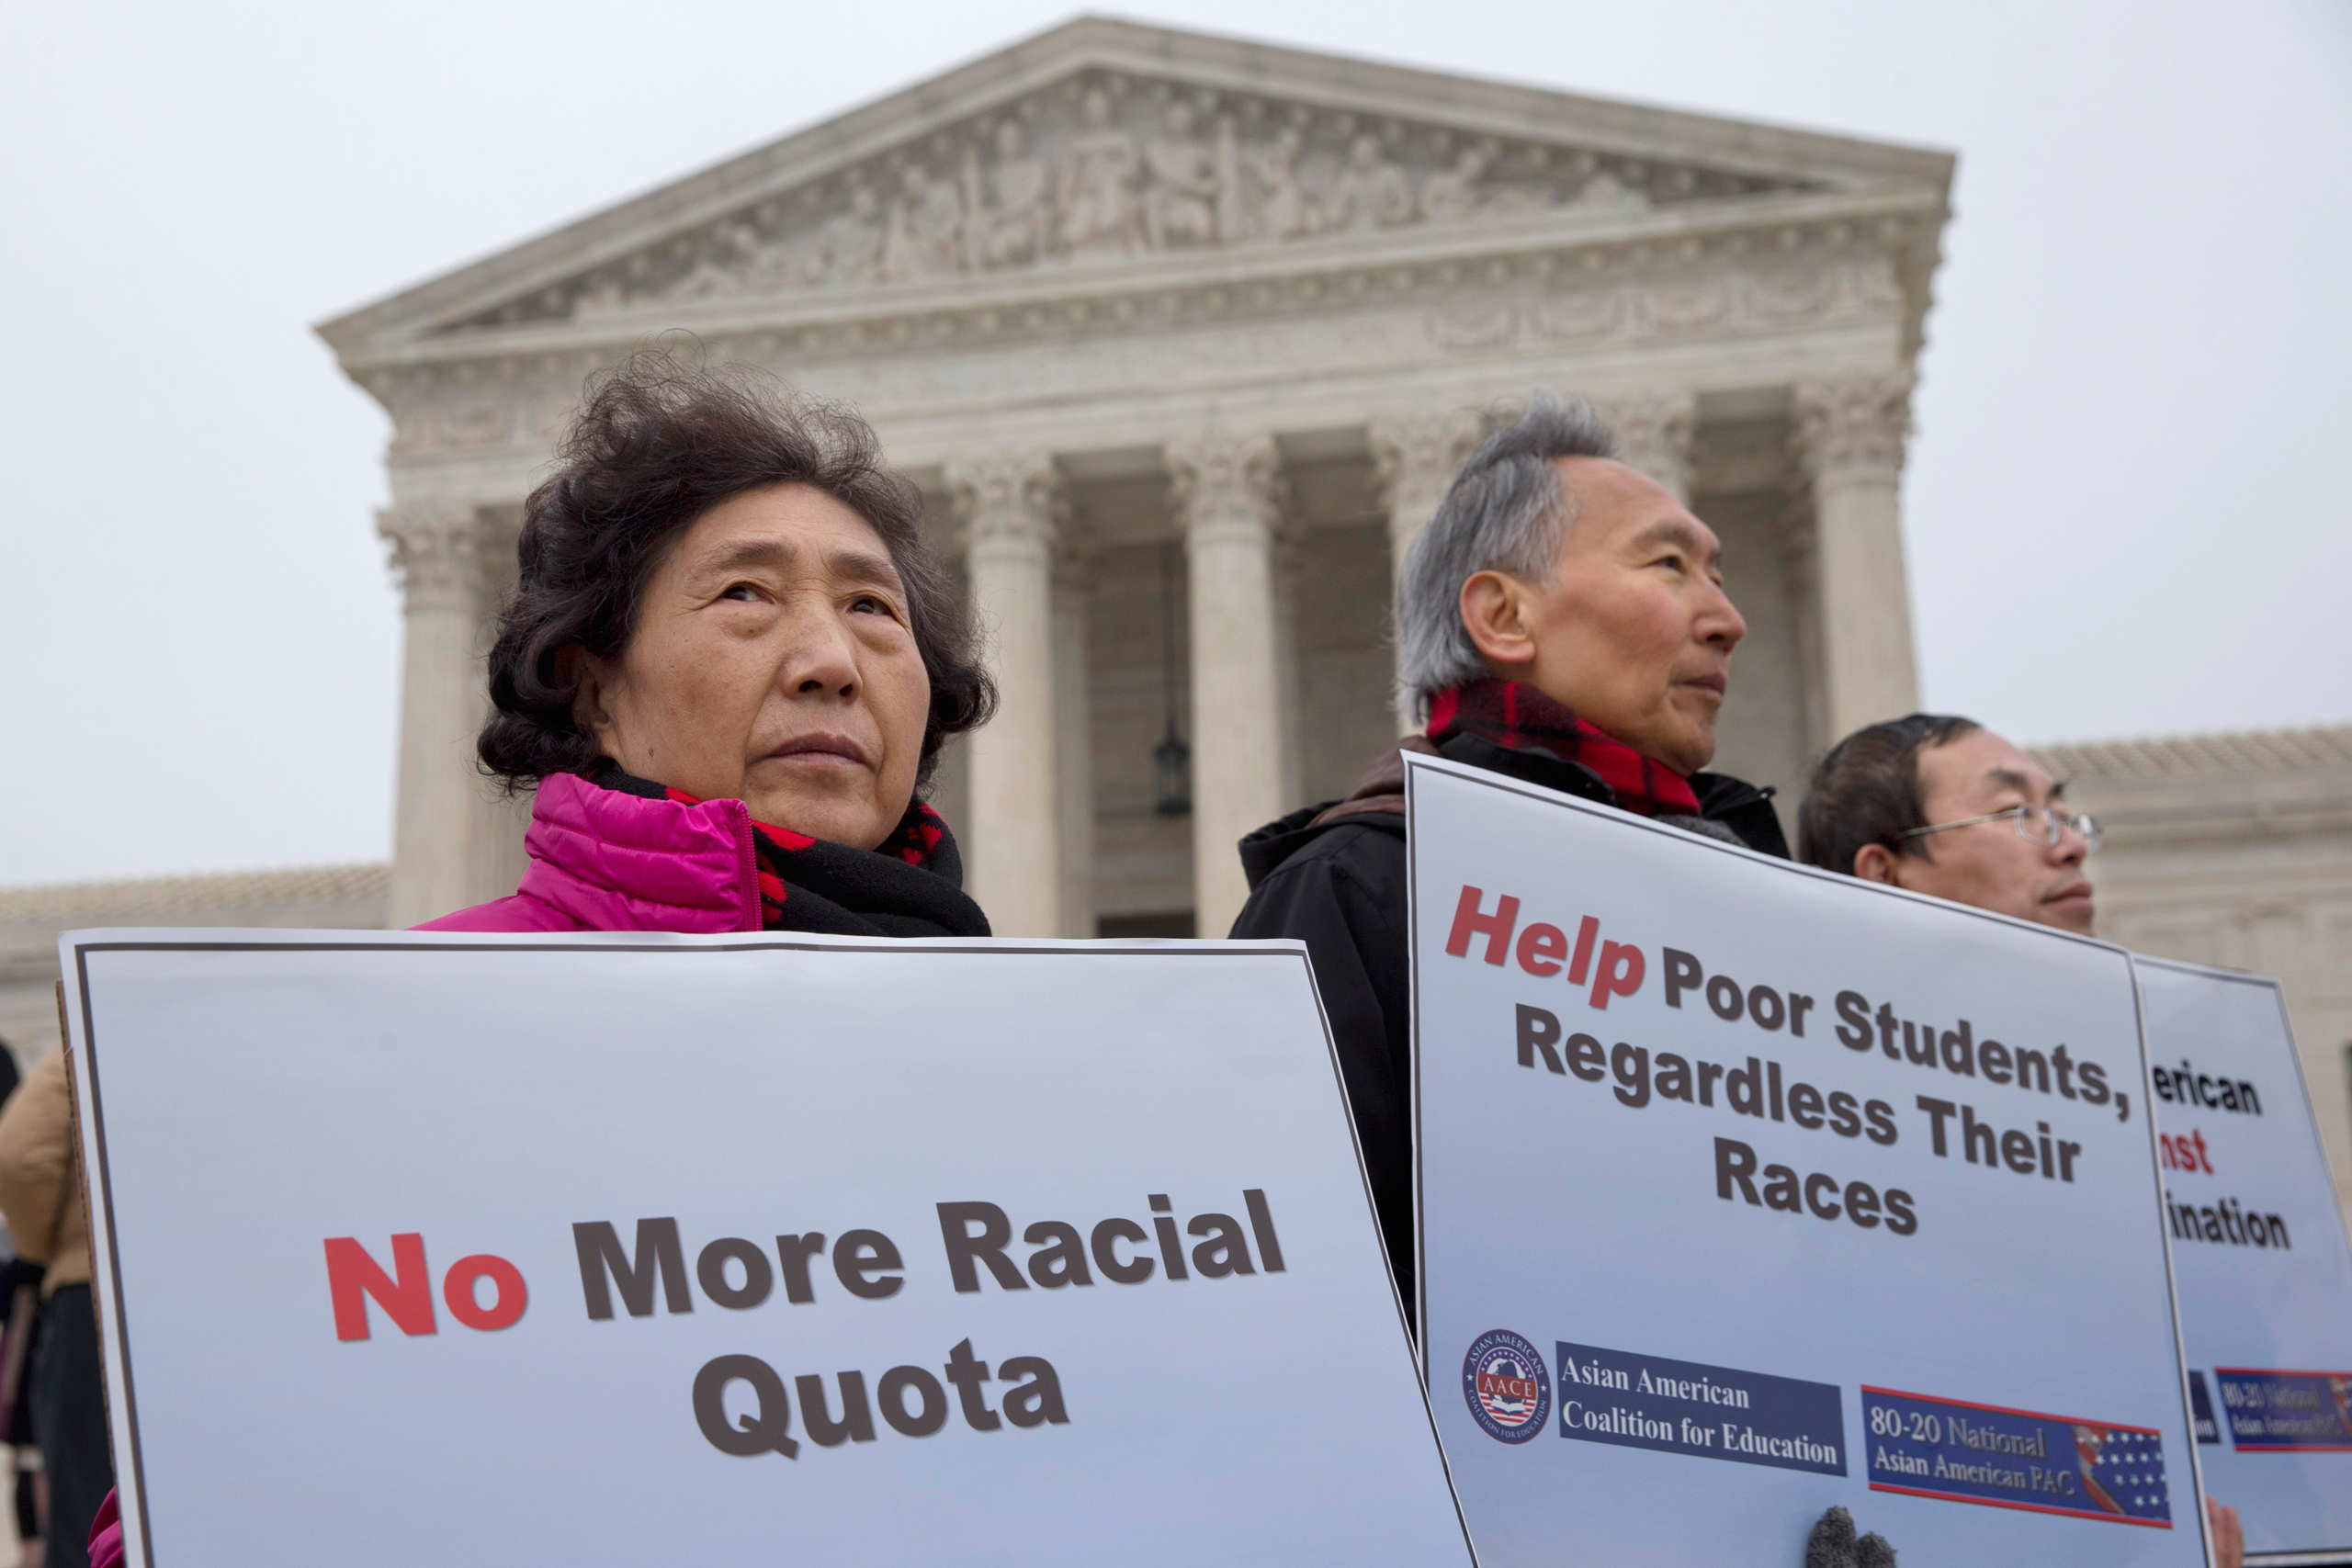 Guixue Zhou of North Potomac, Md., left, and others, protests against racial quotas outside the Supreme Court in Washington on Dec. 9, 2015.